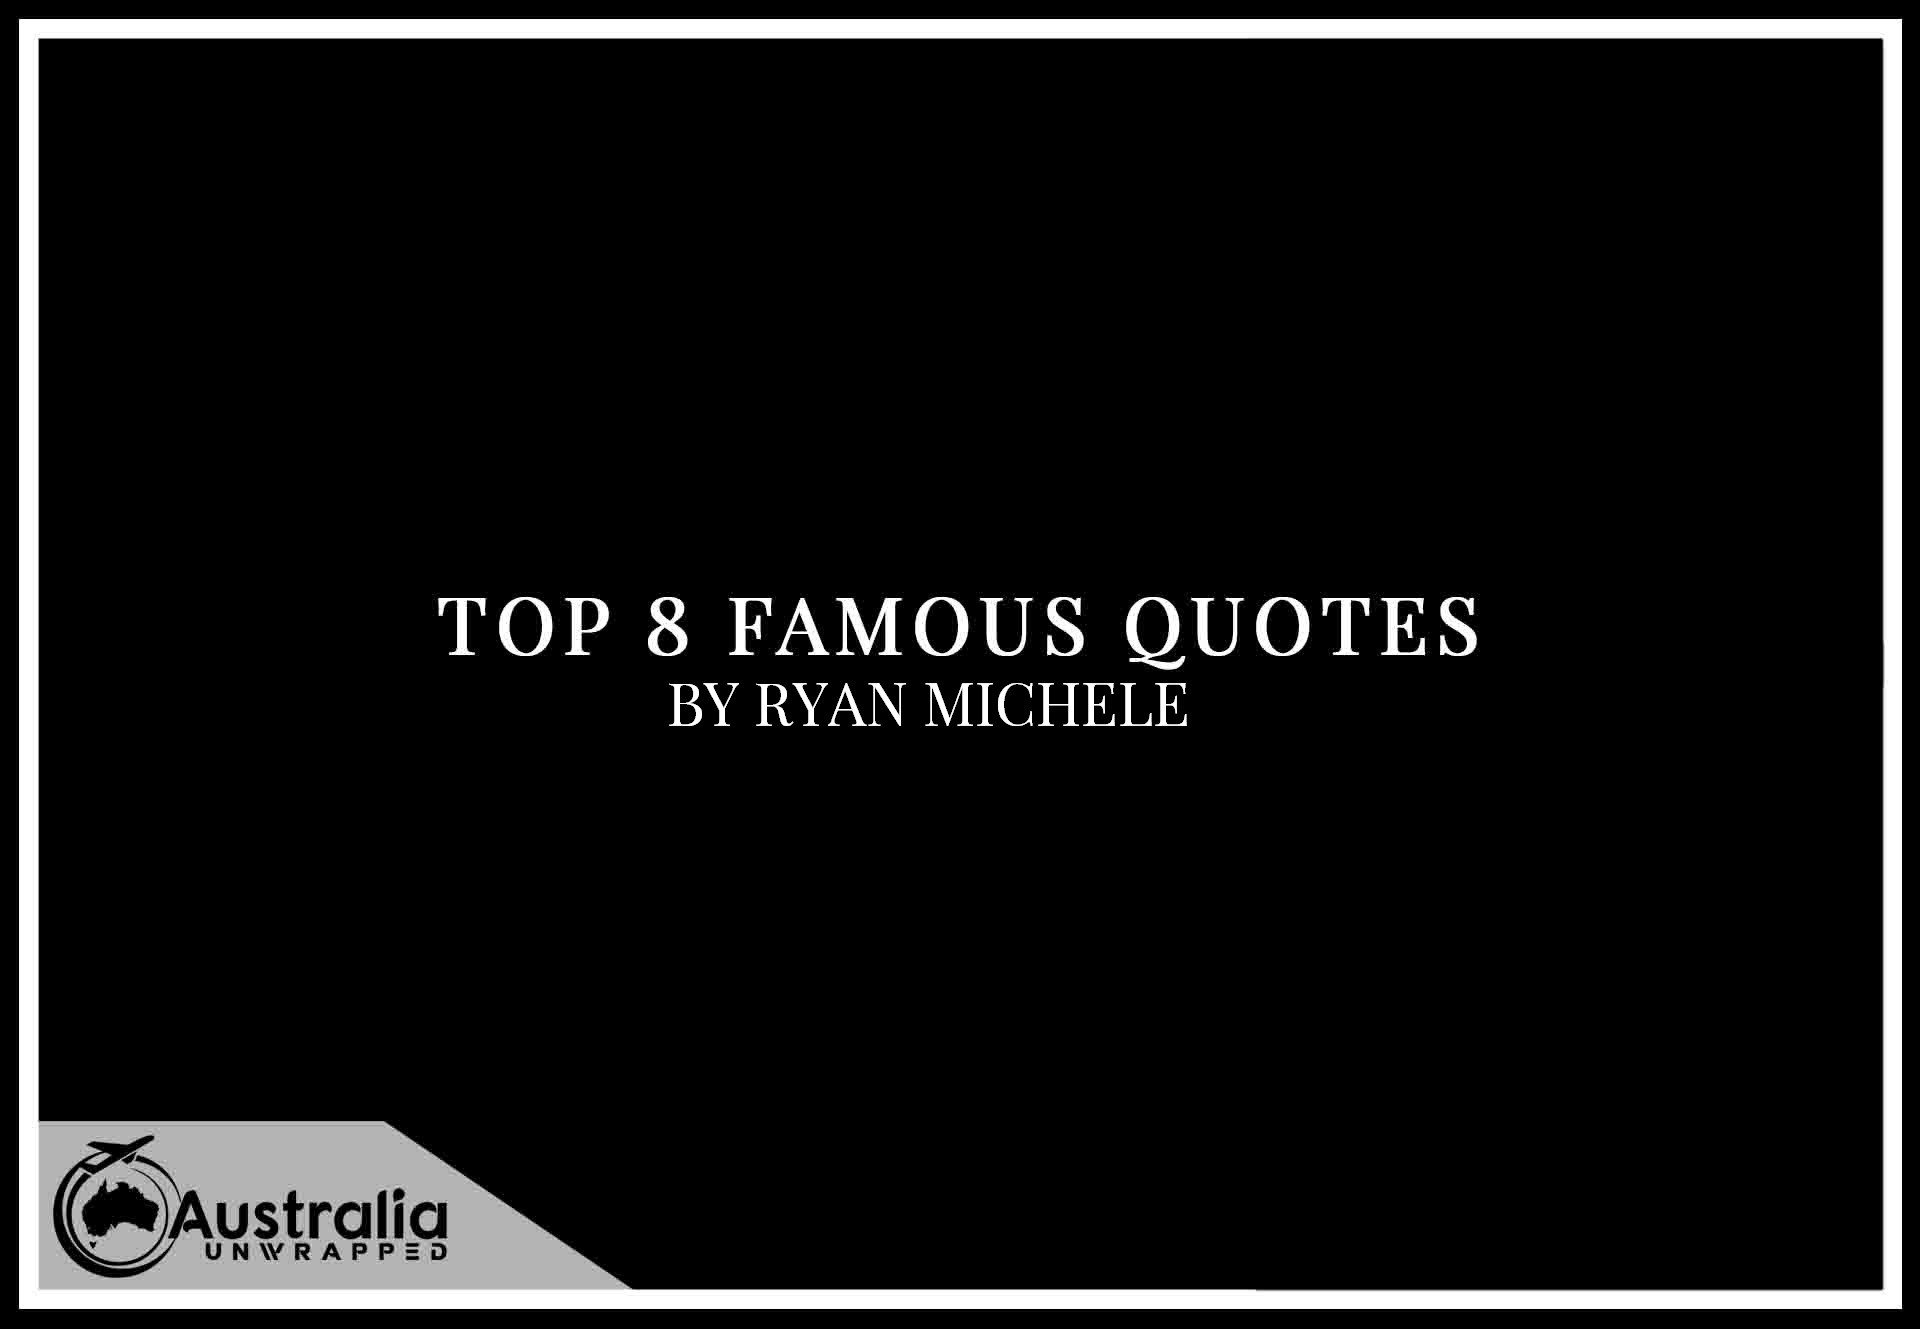 Top 8 Famous Quotes by Author Ryan Michele